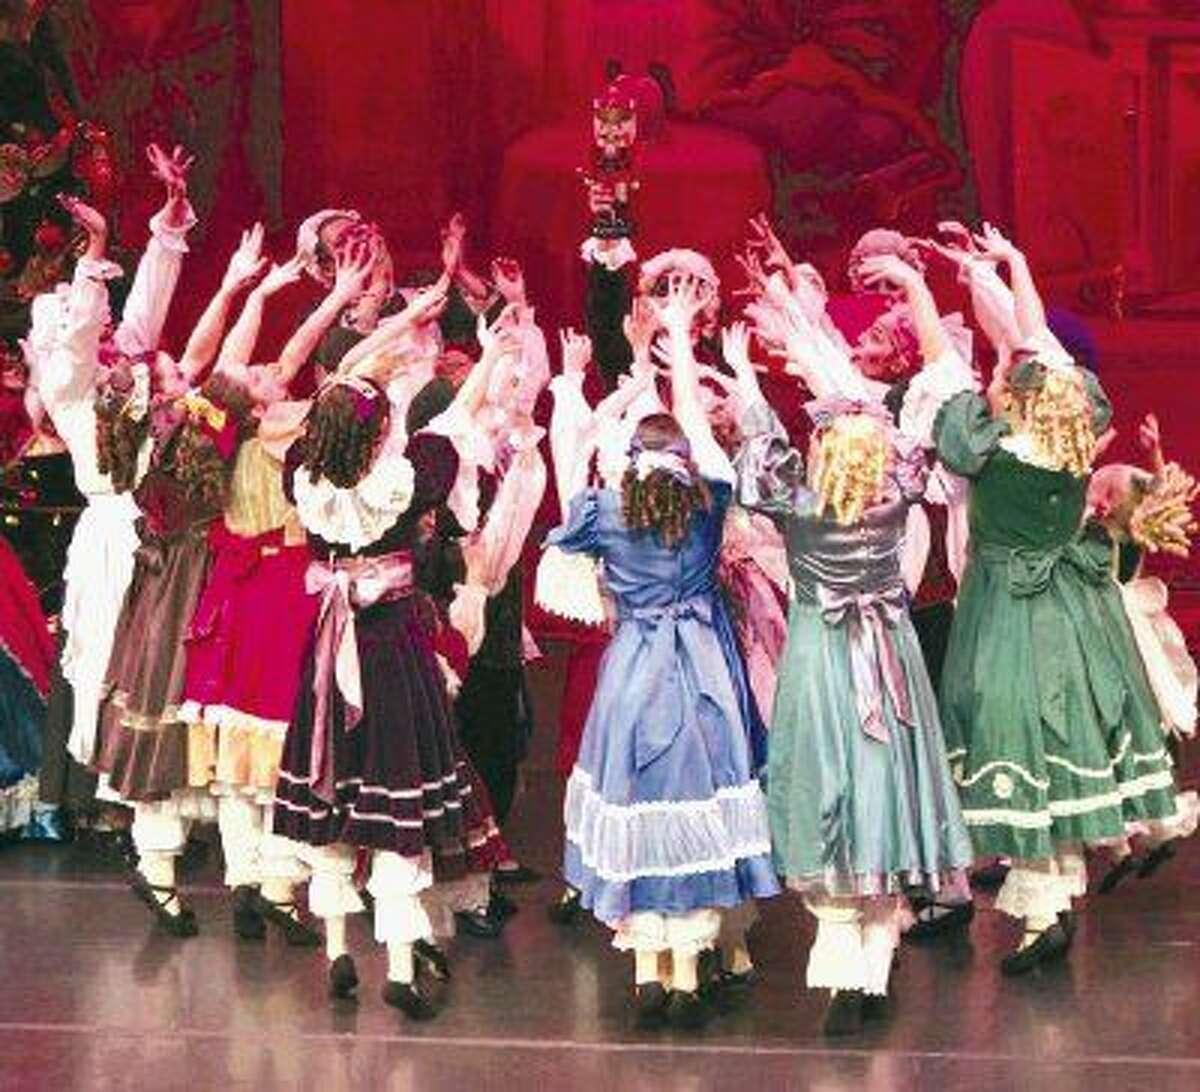 The Baytown Symphony Orchestra will reunite with the ballet company for three performances of